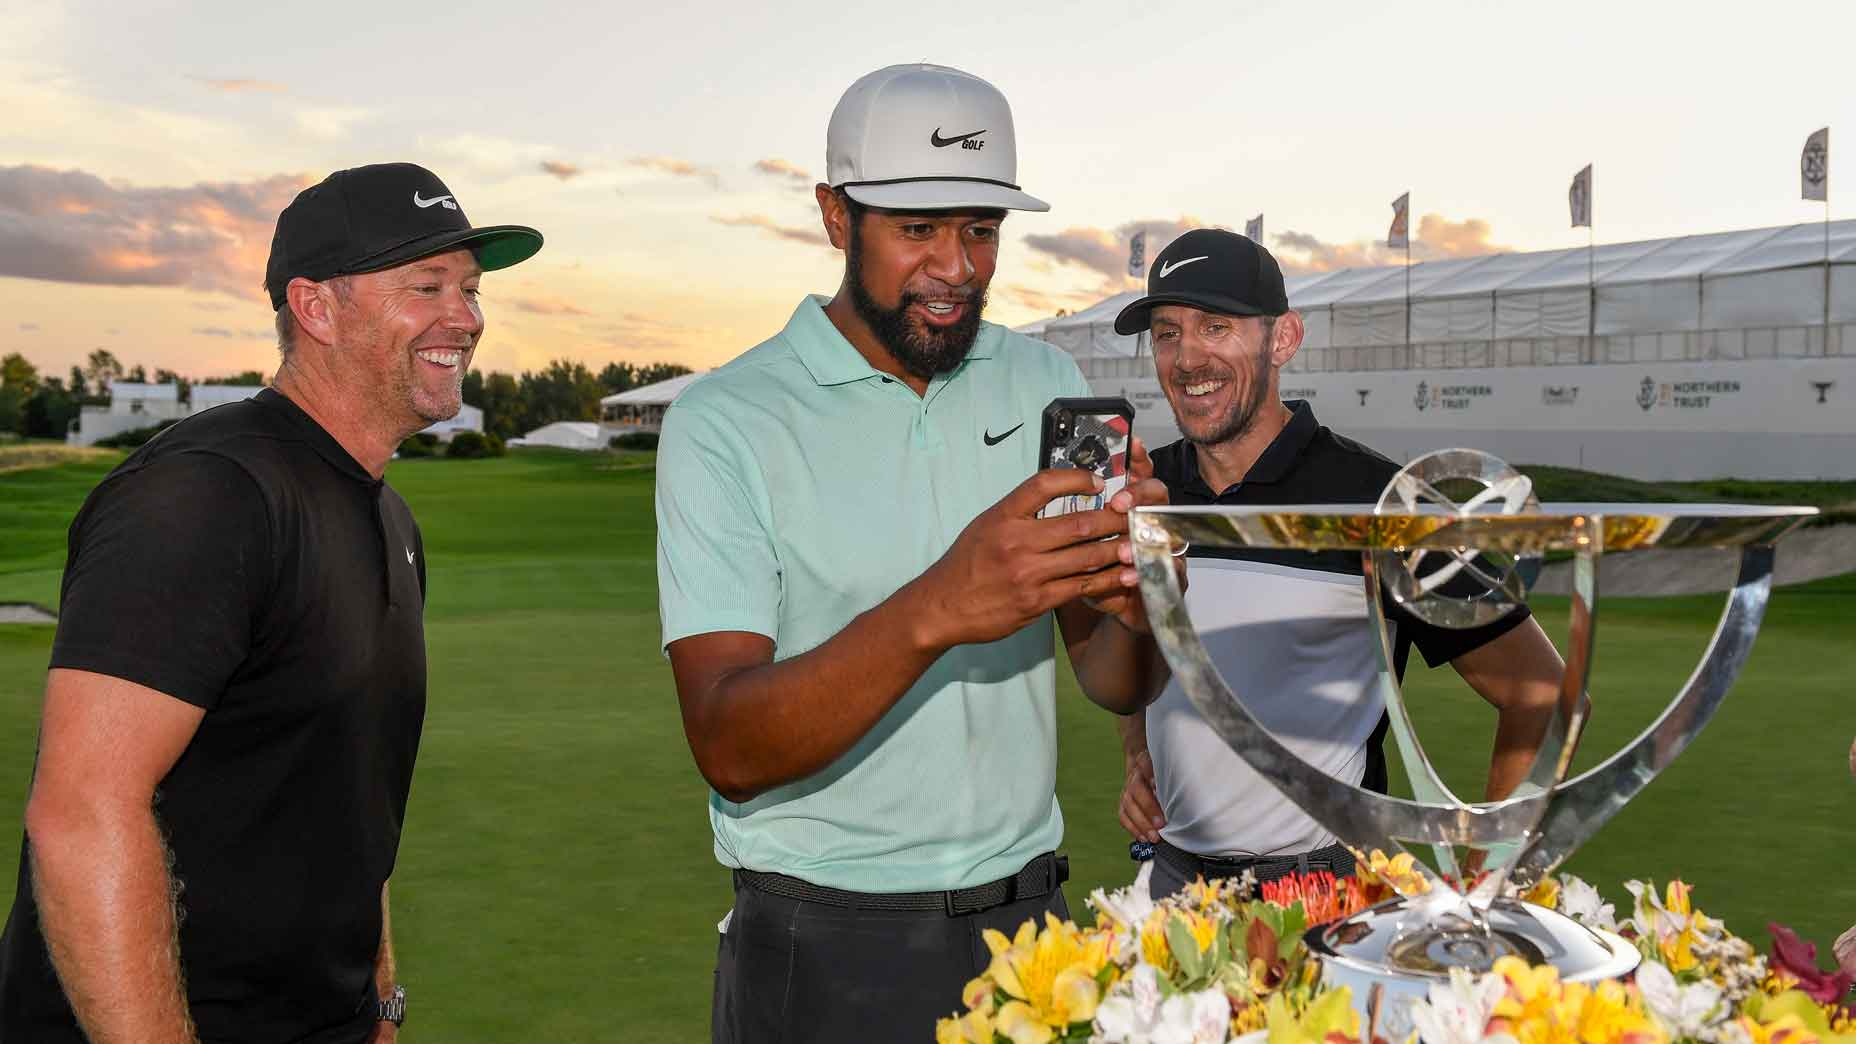 Tony Finau FaceTimes with his family next to the Northern Trust trophy